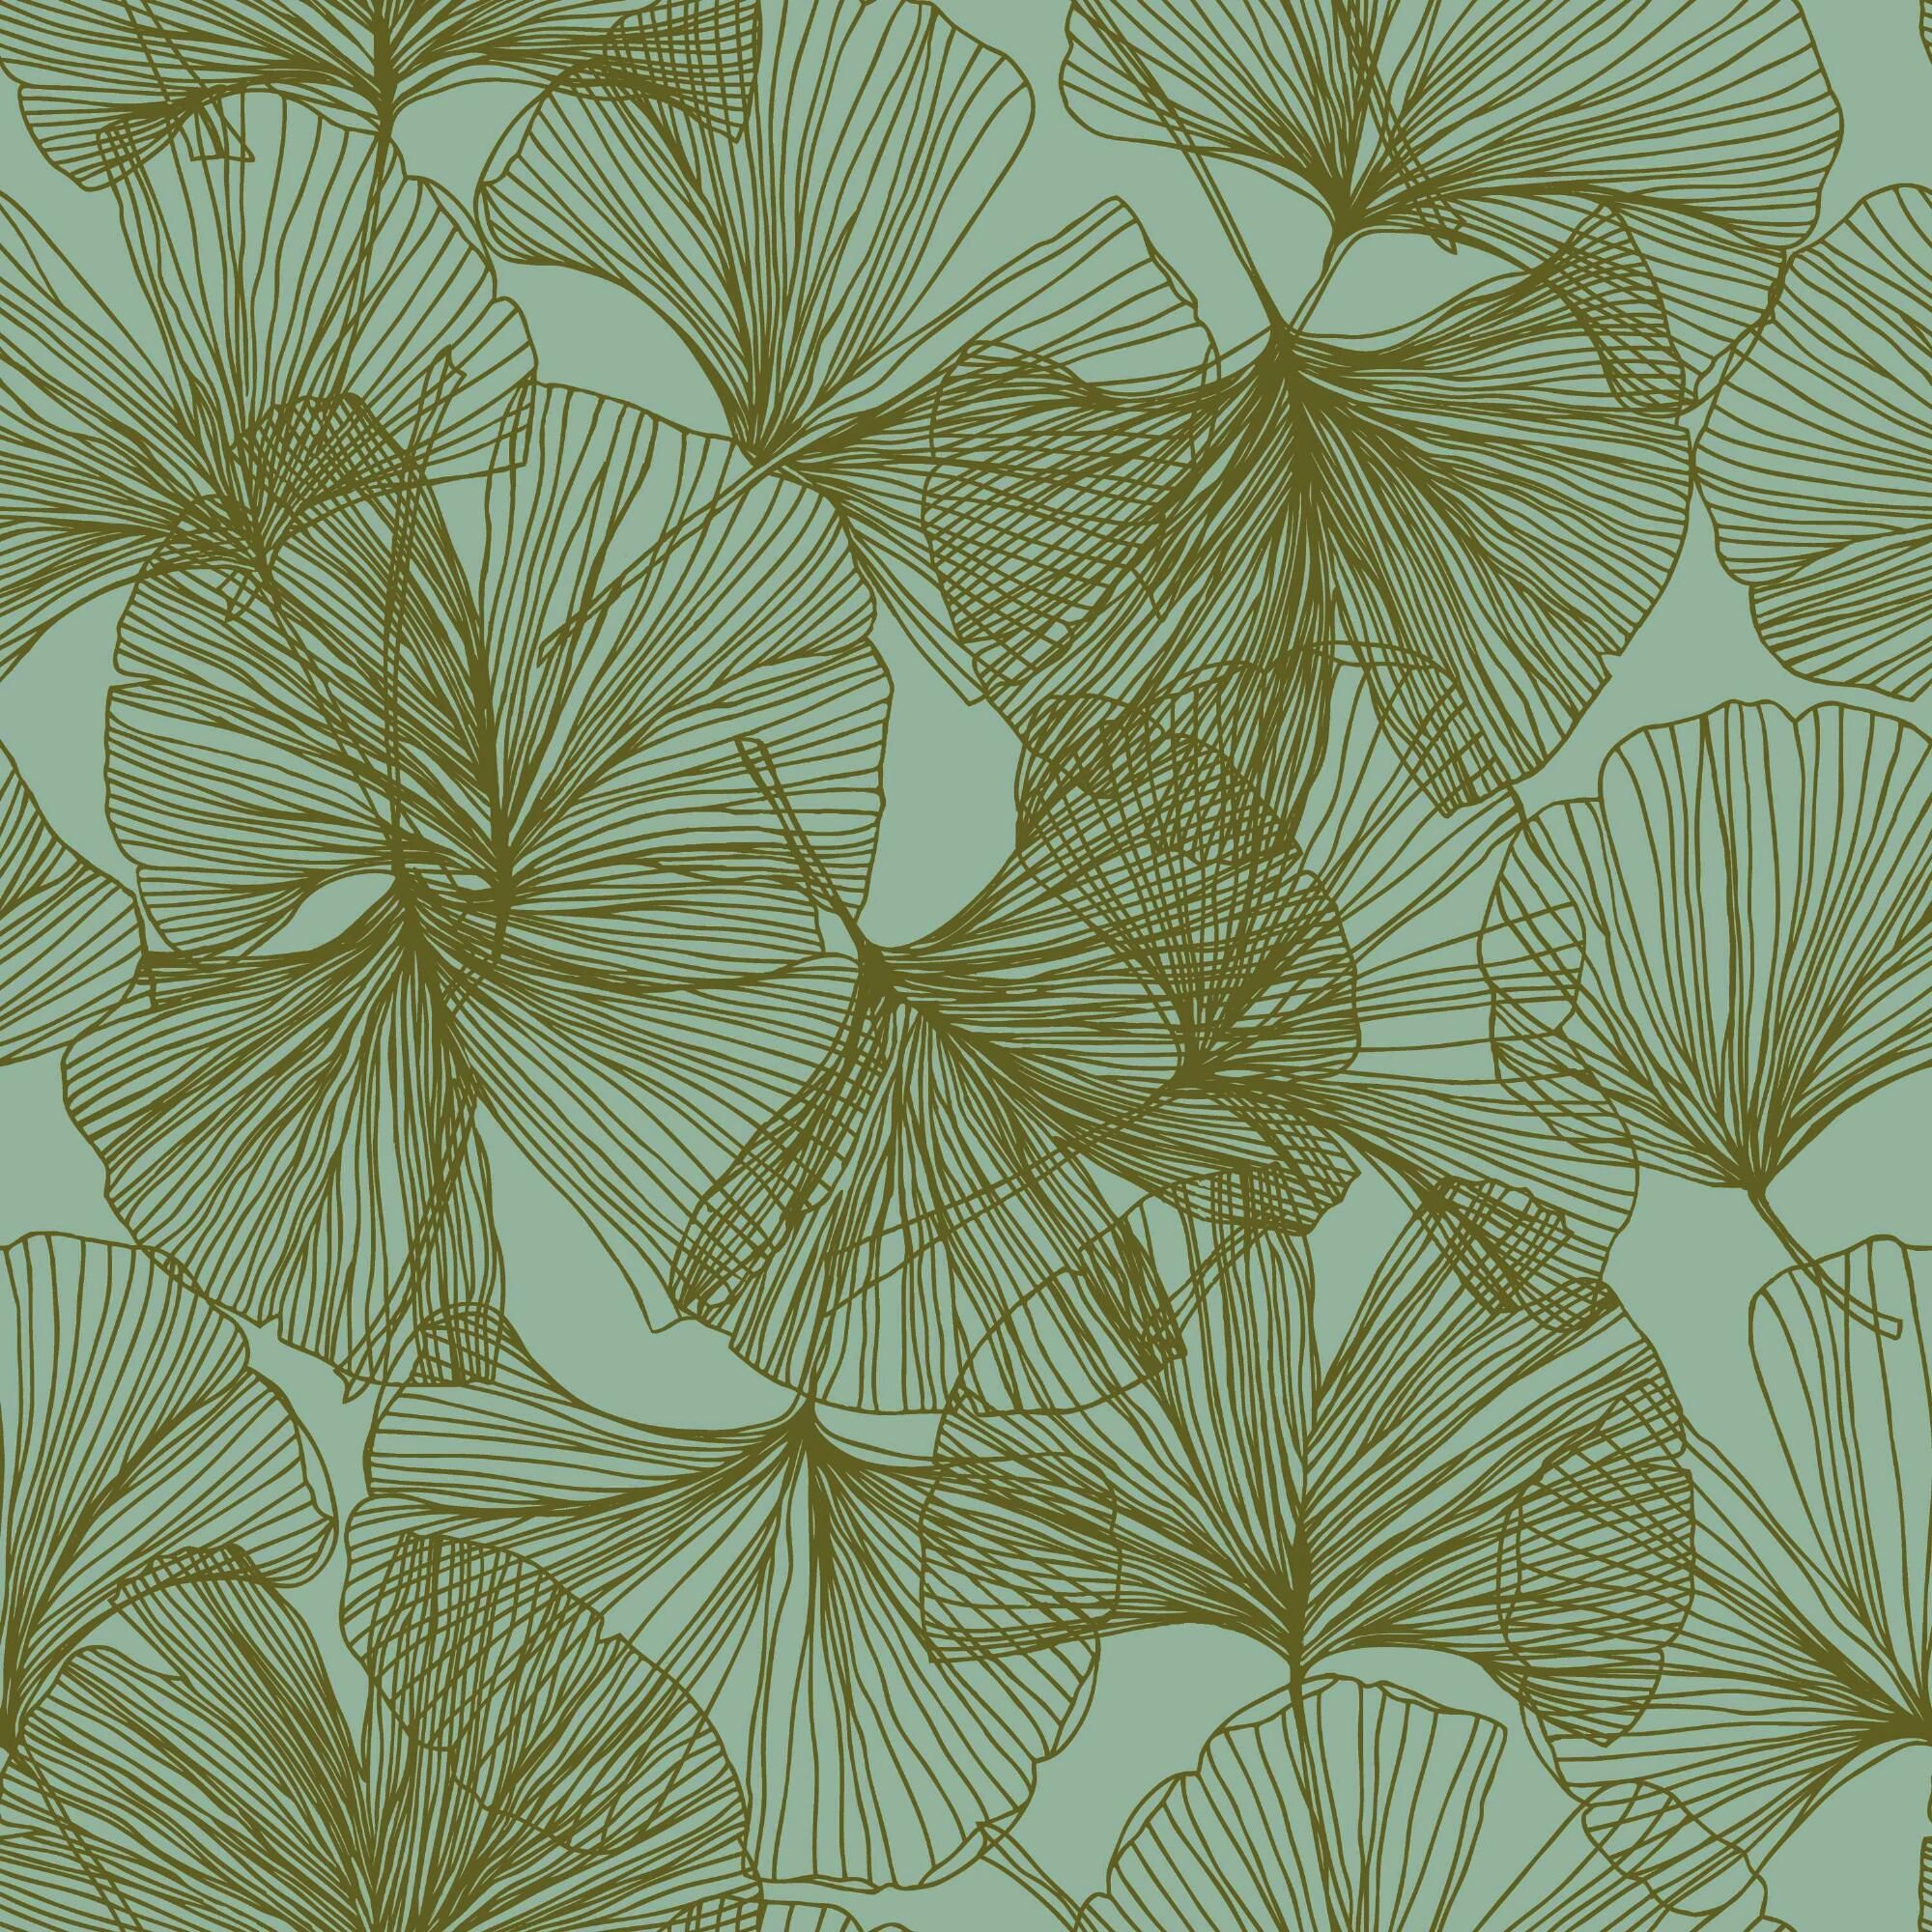 Gold Ginkgo Leaves Peel And Stick Wallpaper By World Market In 2021 Peel And Stick Wallpaper Wallpaper Unique Picture Frames